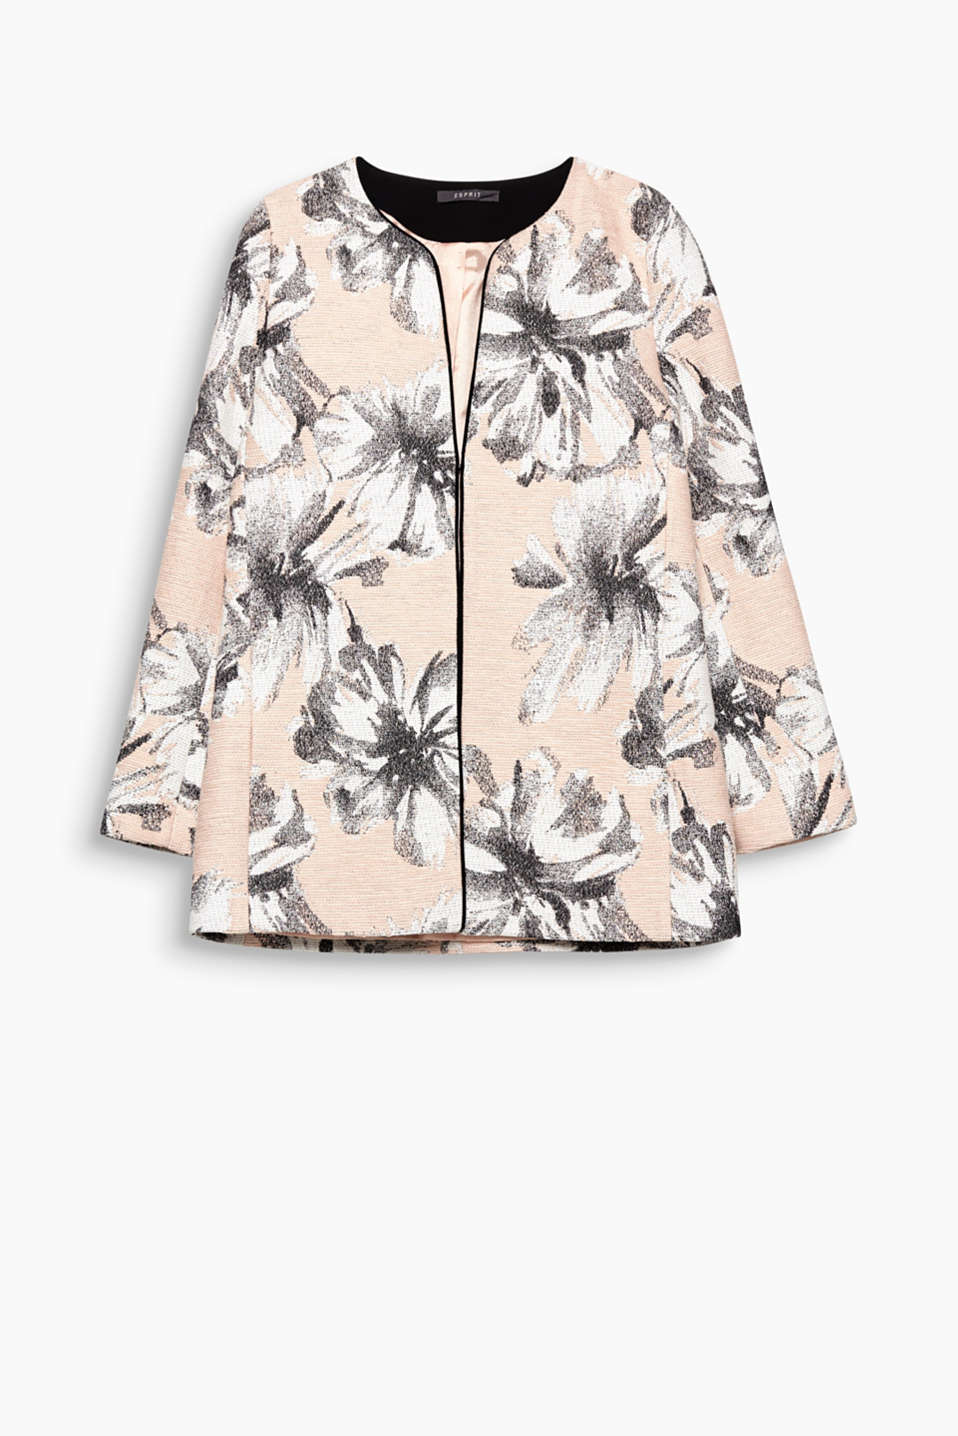 Coat with jacquard flowers, blended cotton